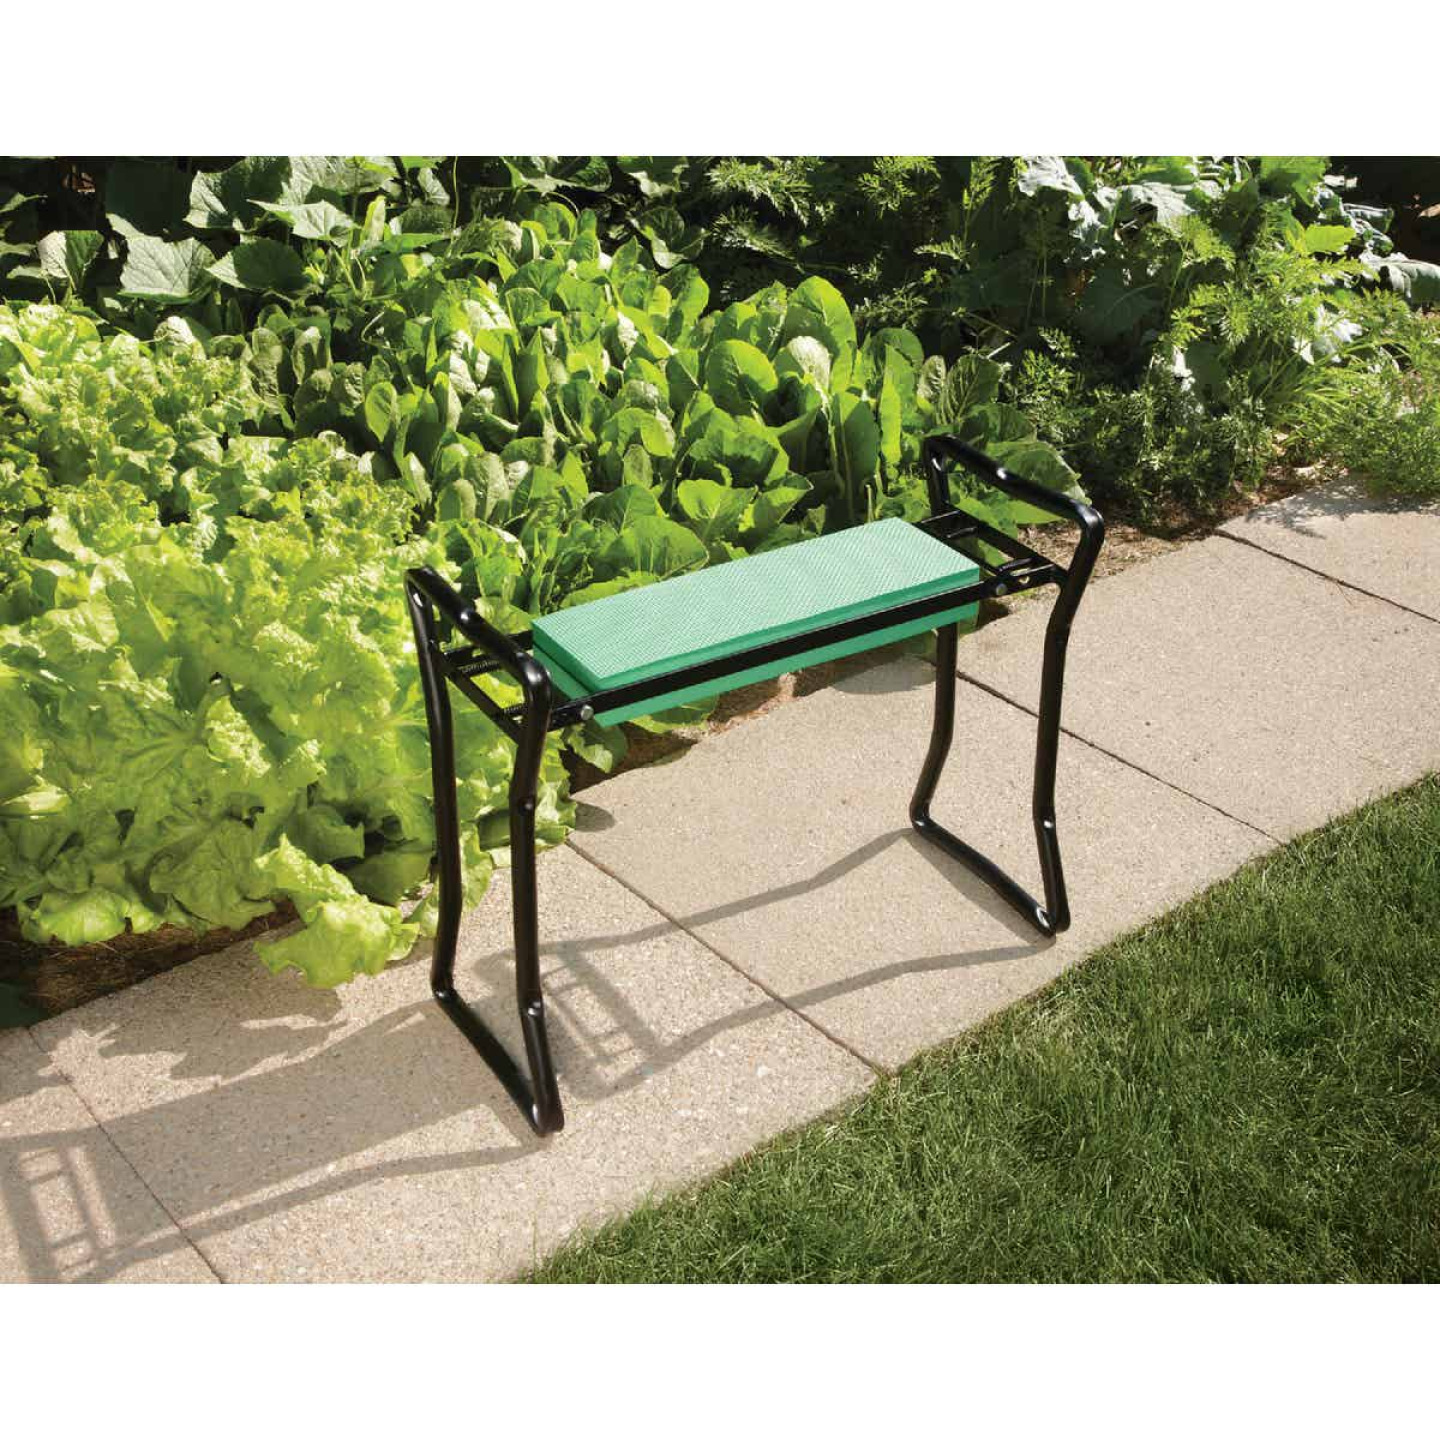 Best Garden Green Foam Pad w/Black Steel Frame Garden Kneeler Bench Image 4